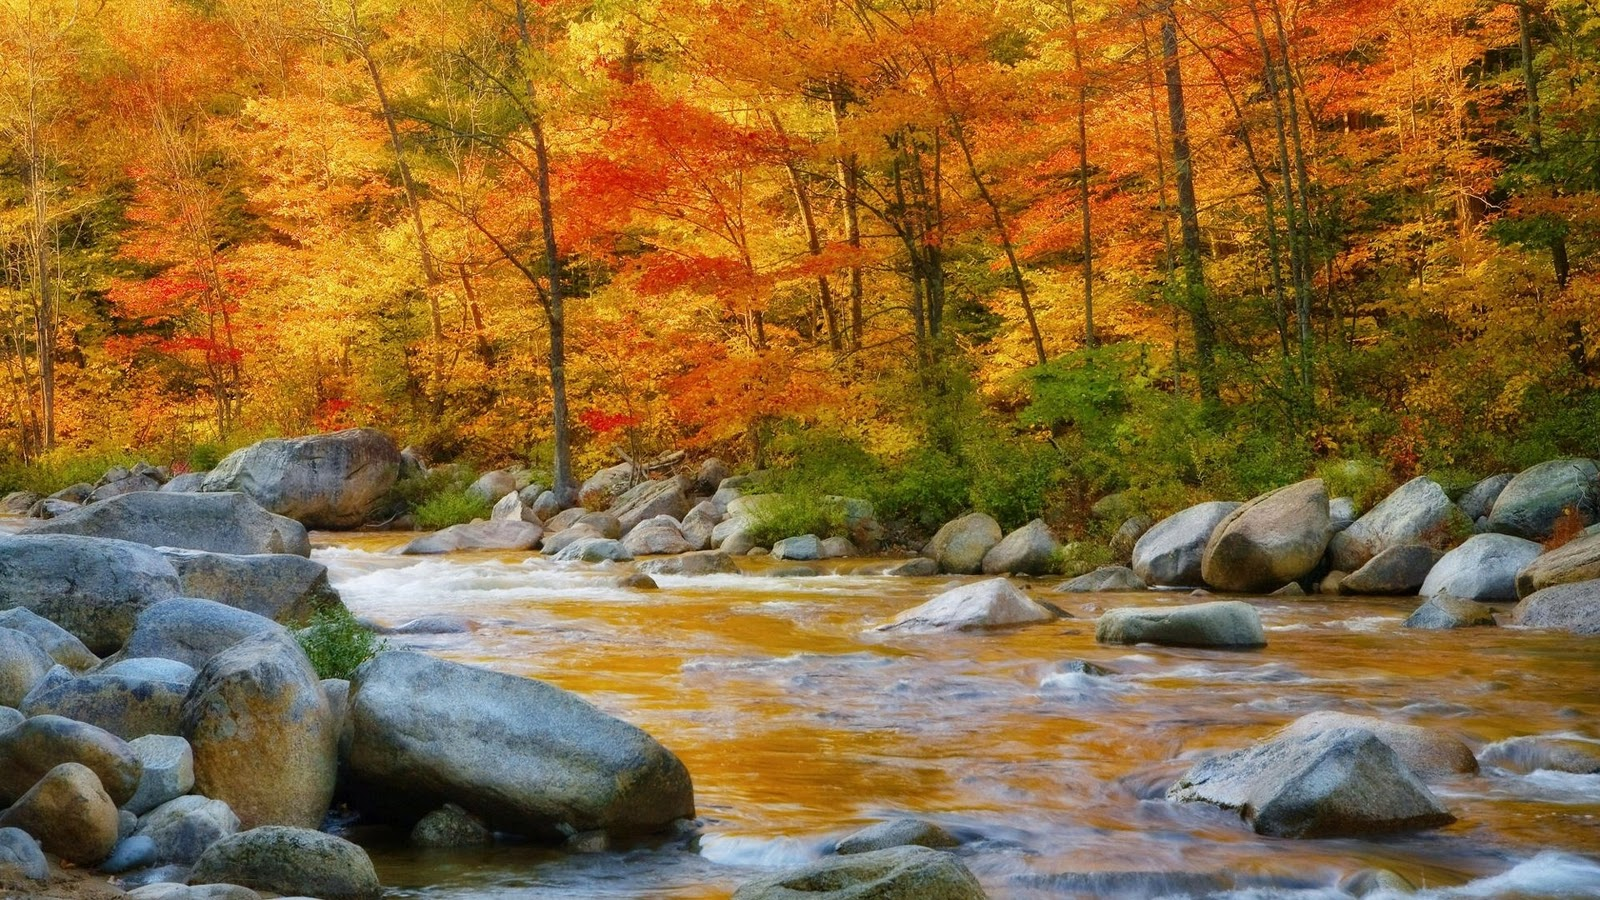 autumn picture wallpaper download river with rocks photos download